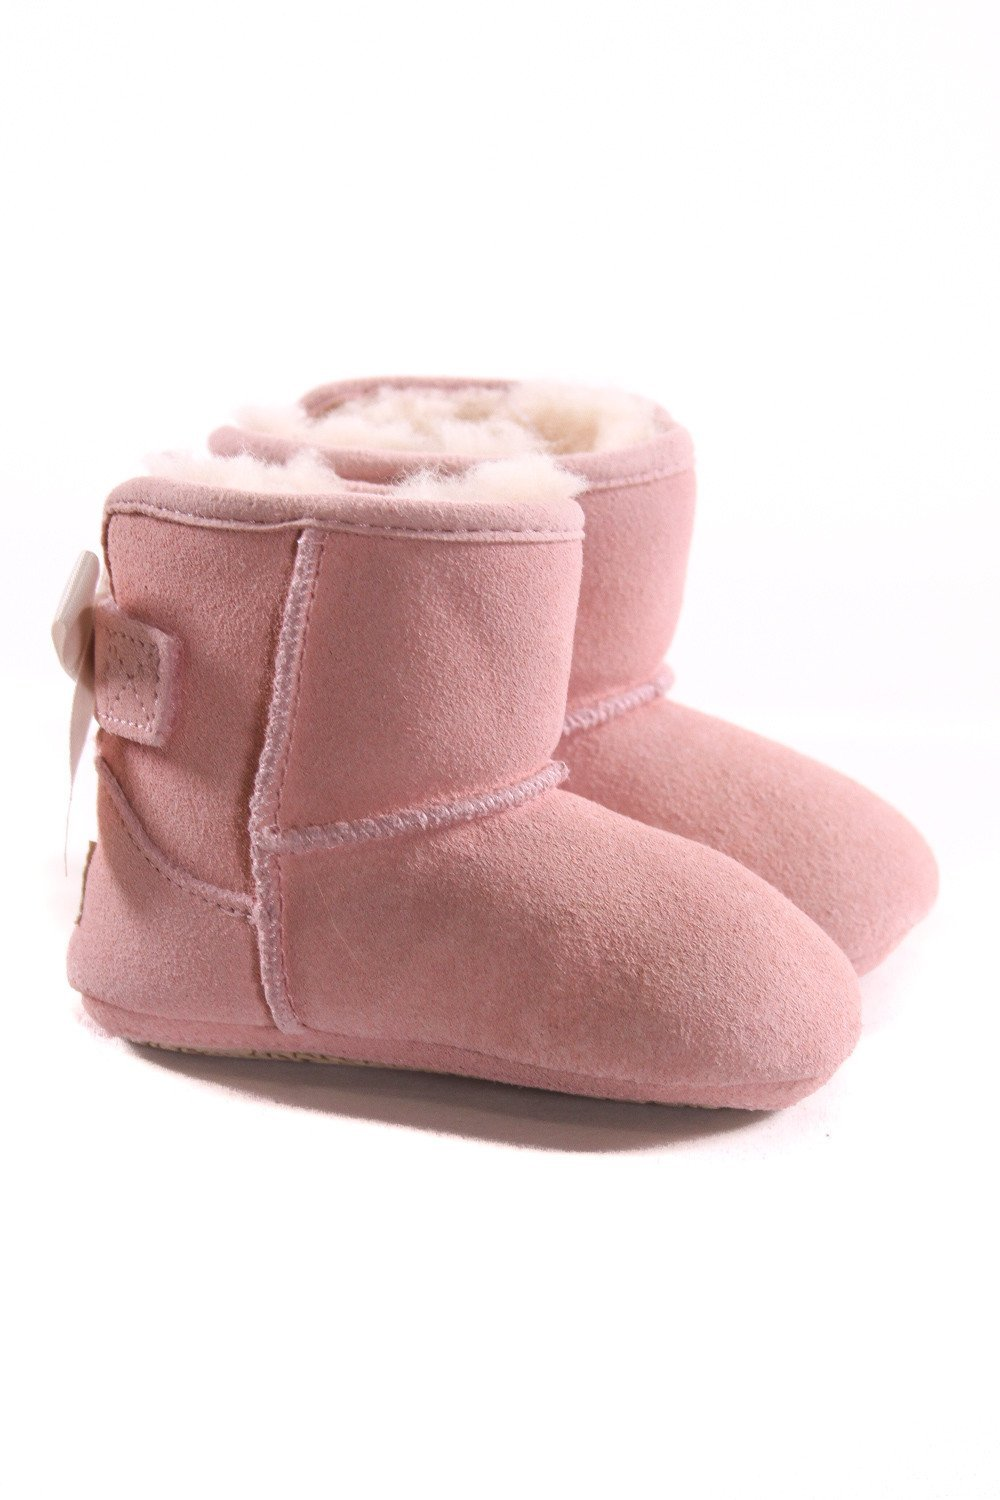 58dc60146c0 UGG PINK BOOTIES WITH BOWS *SIZE 2-3, EUC